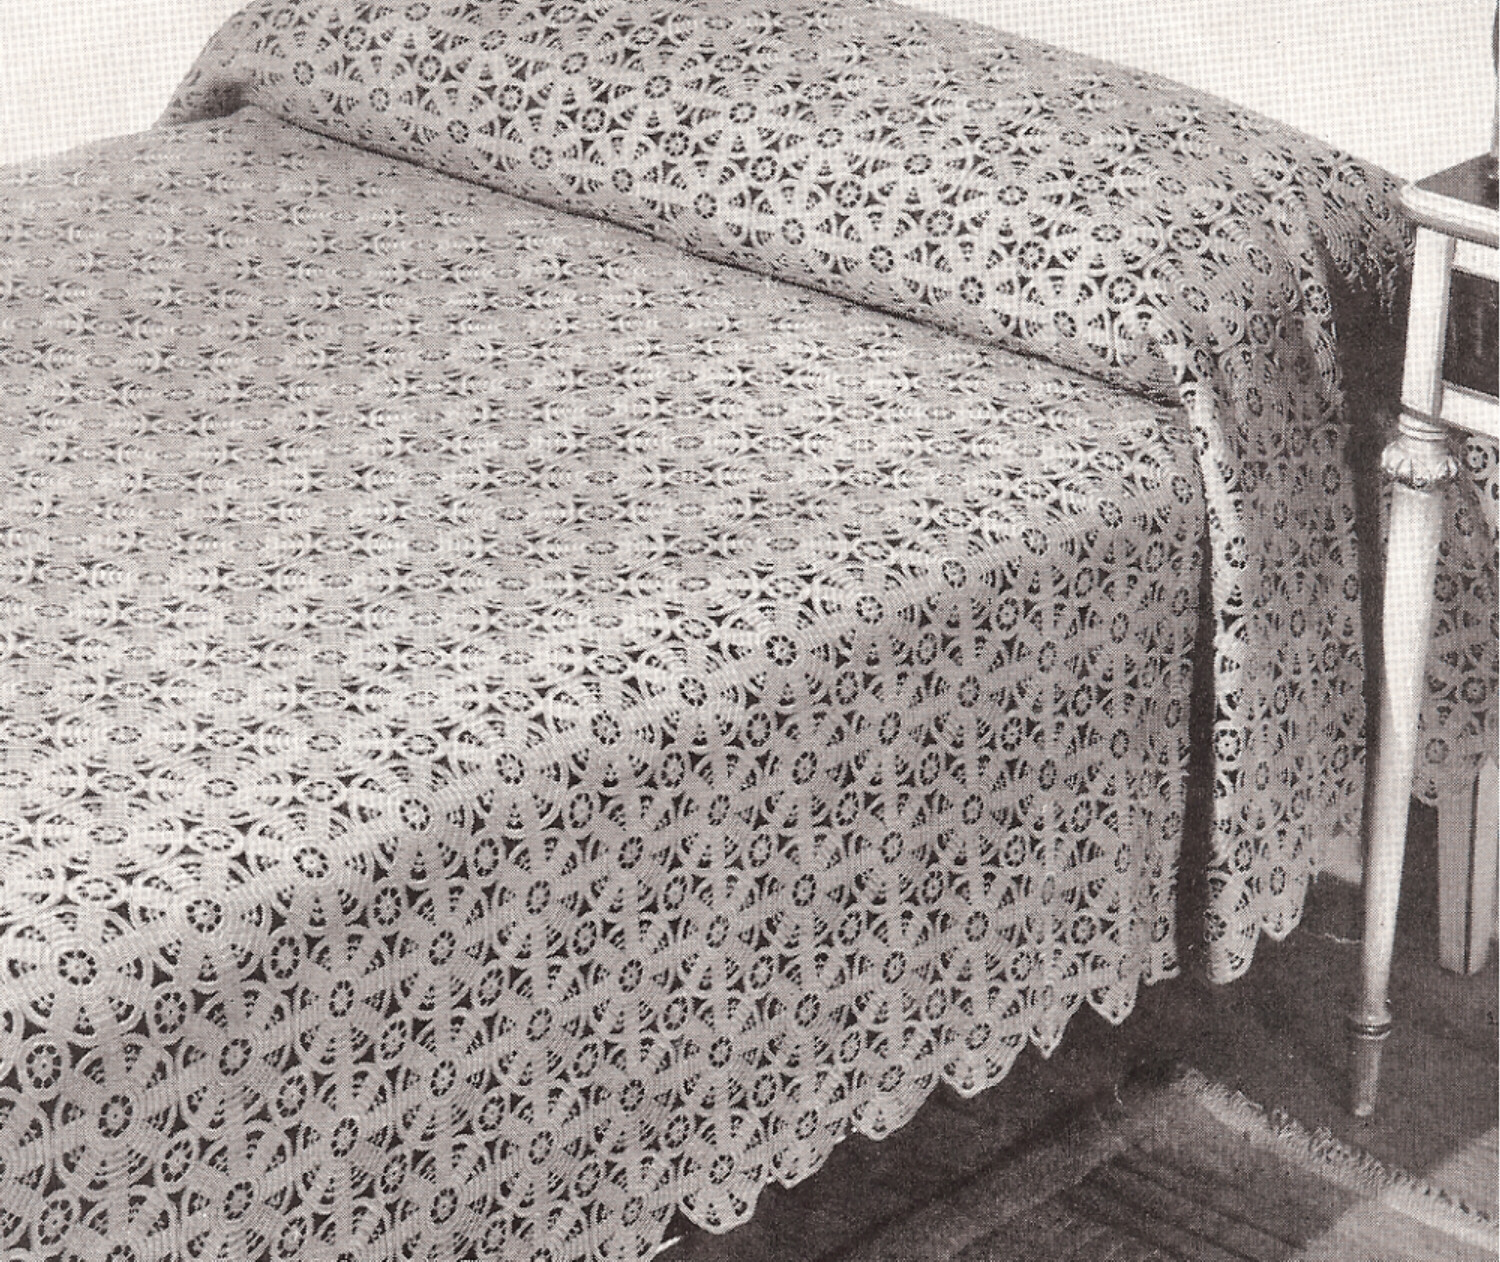 Crochet Bedspread Patterns : Vintage Crochet MOTIF BLOCK Bedspread Magic Pattern eBay